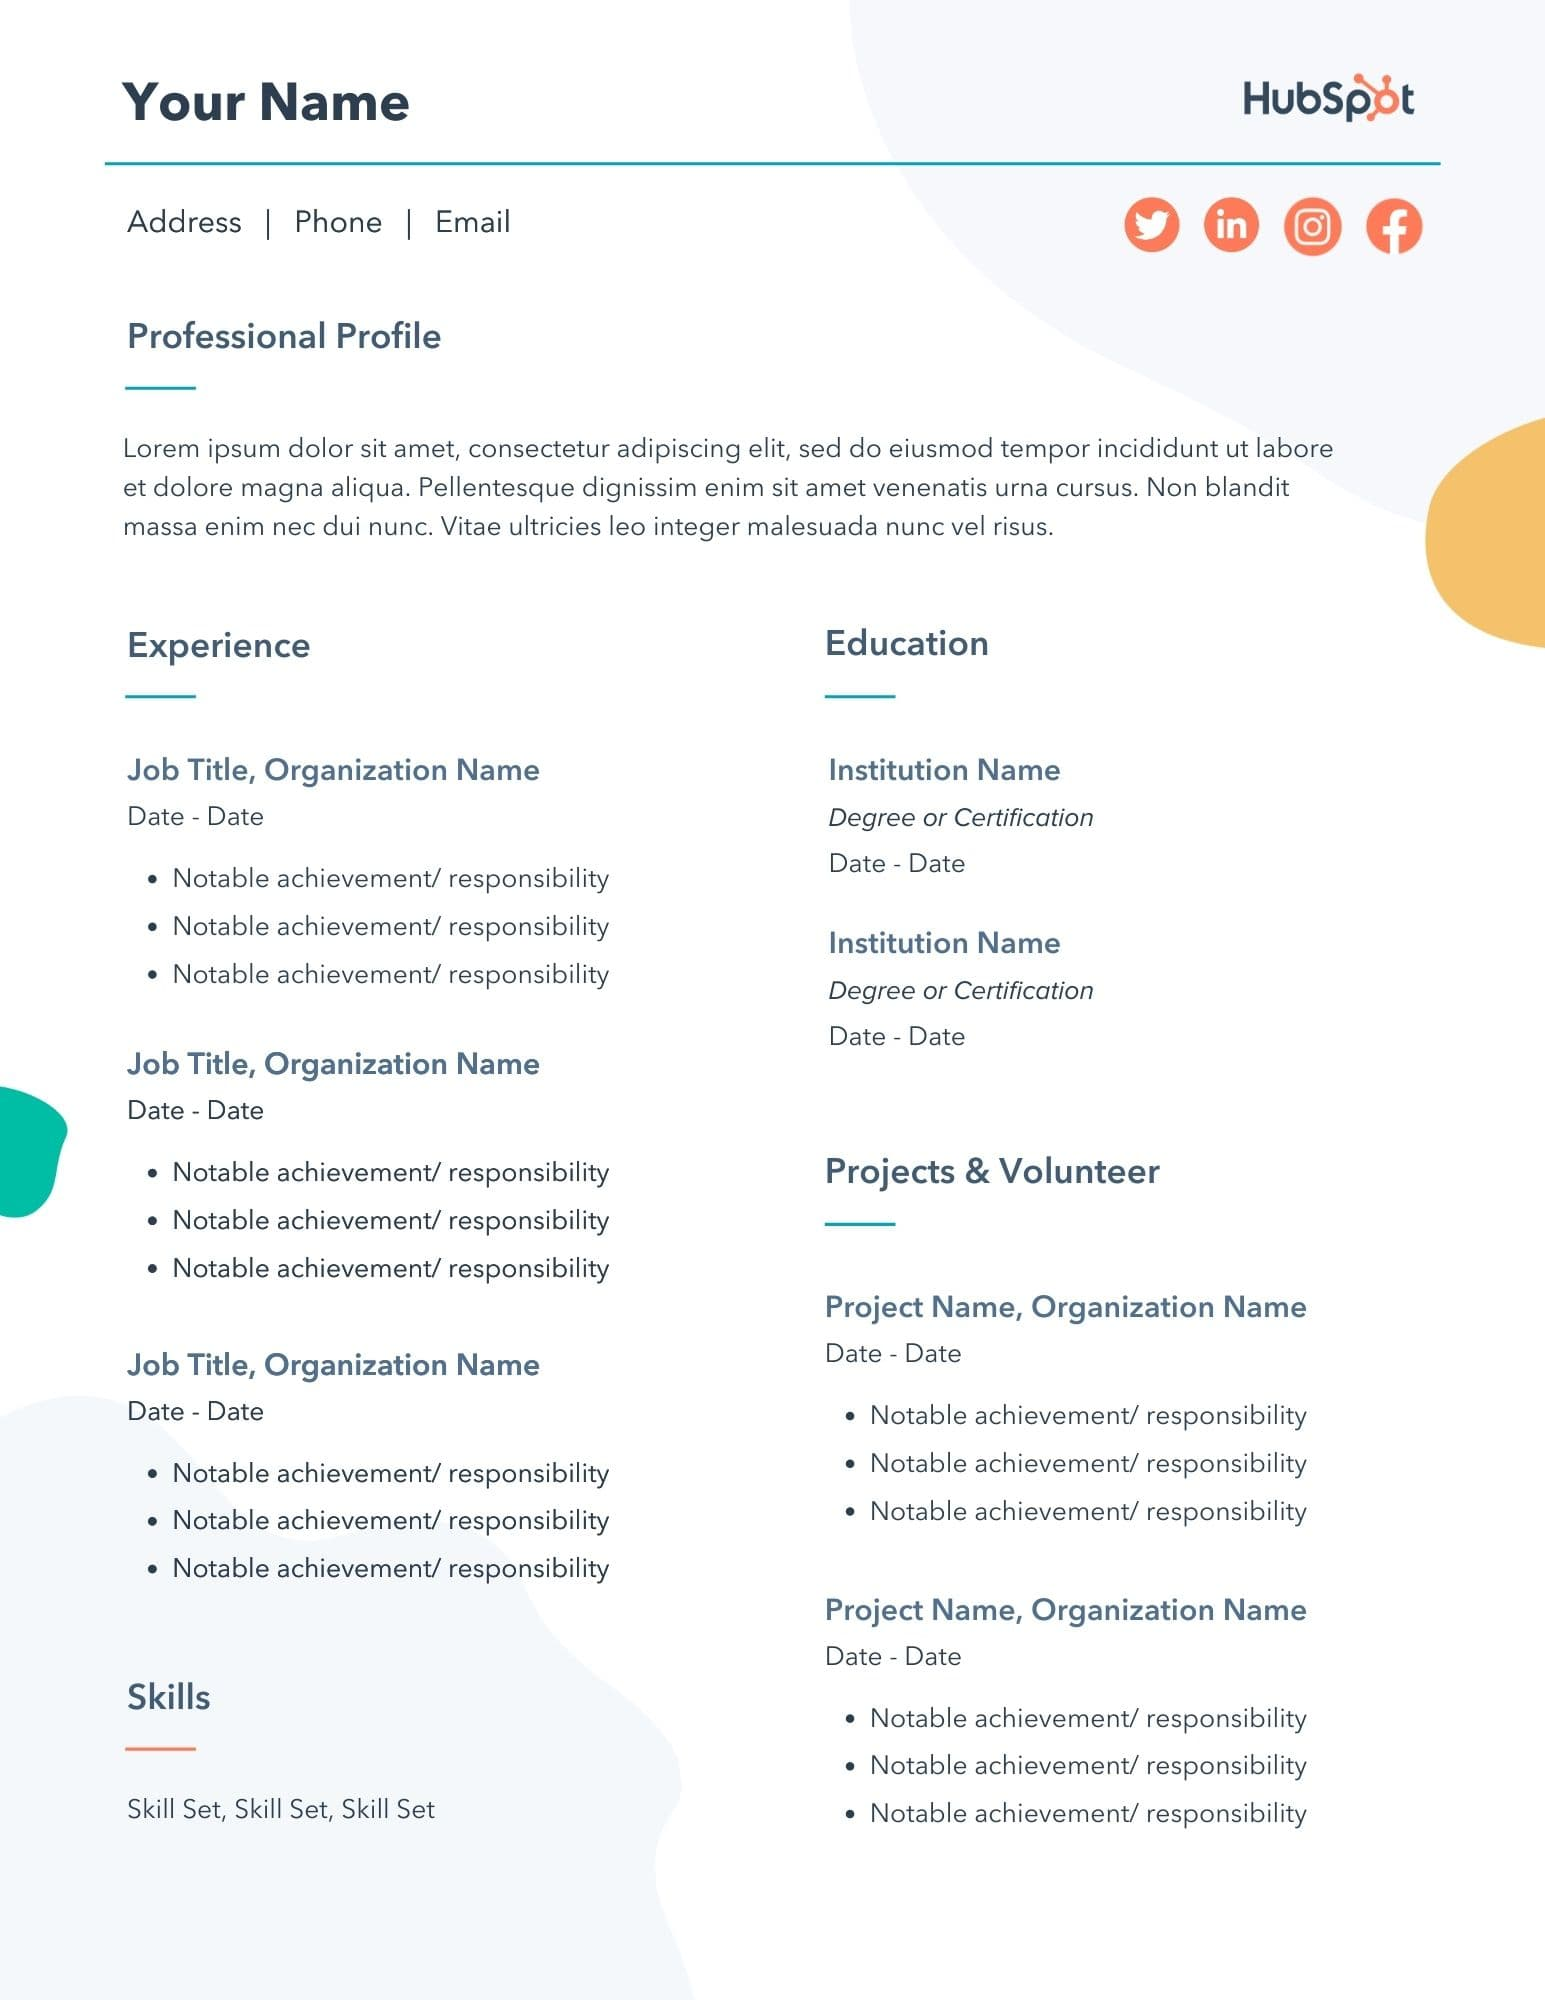 free marketing resume templates samples for template one job history new accounting Resume Resume Template For One Job History